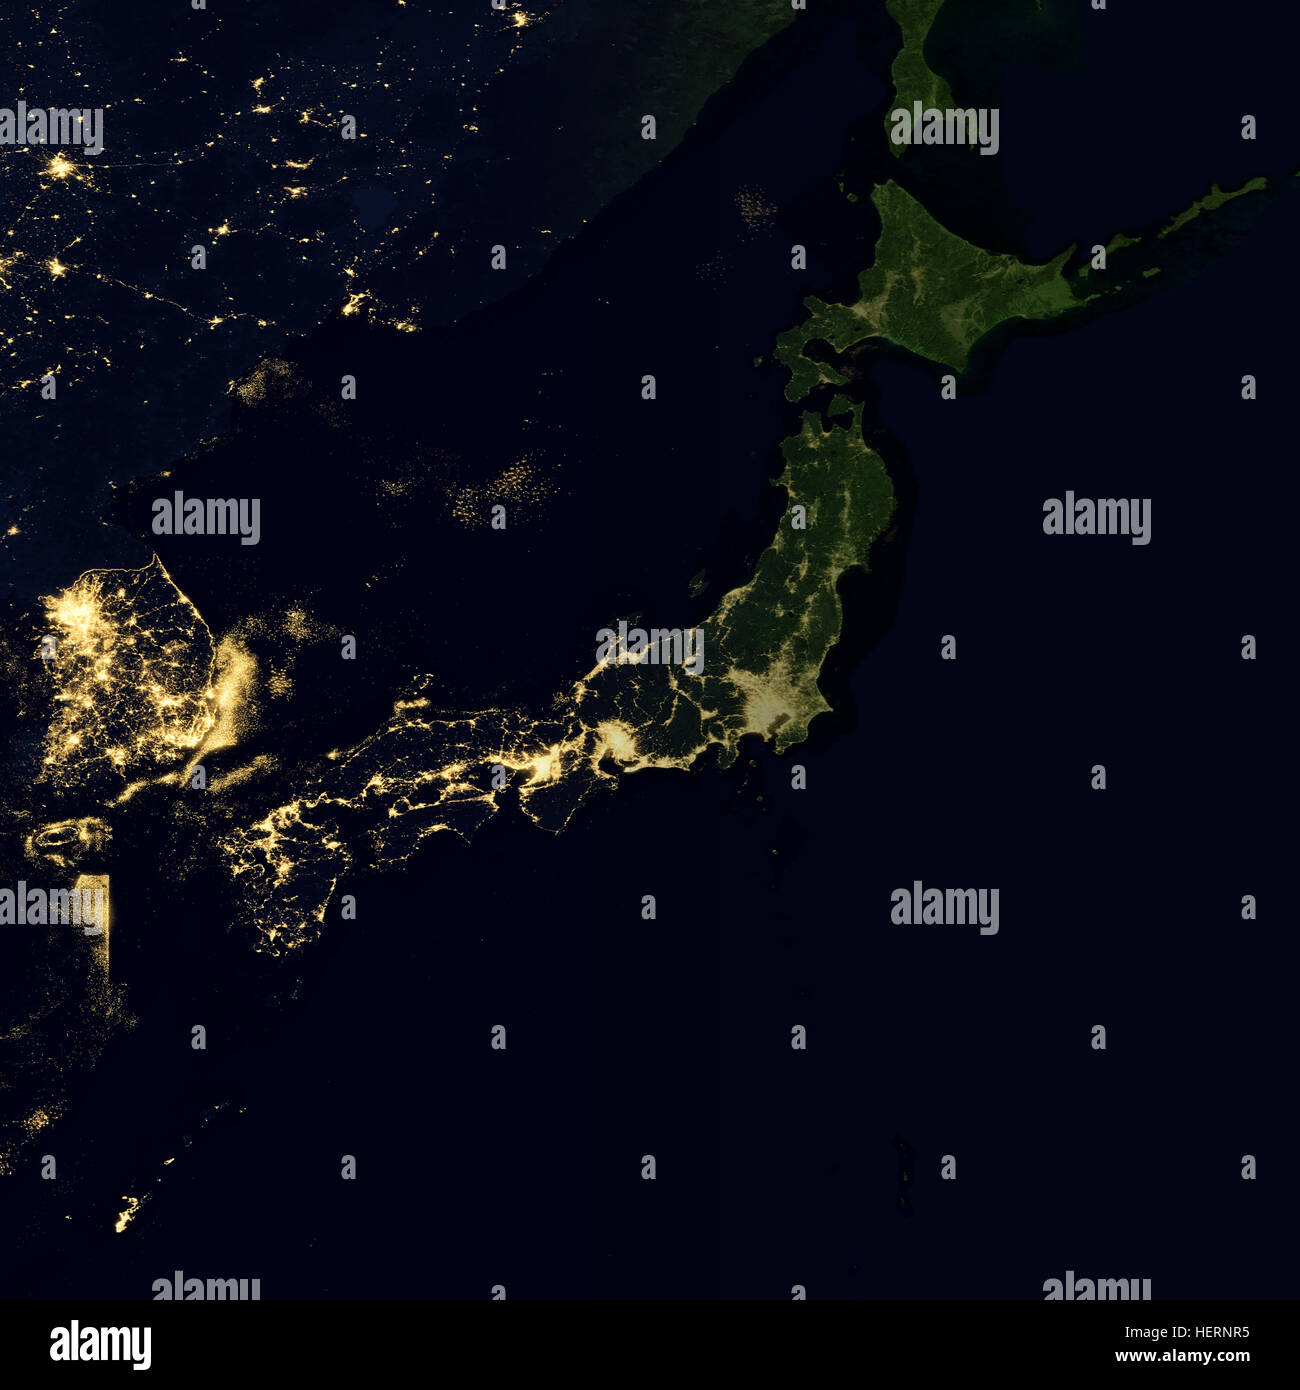 City lights on world map japan stock photo 129599769 alamy city lights on world map japan gumiabroncs Images